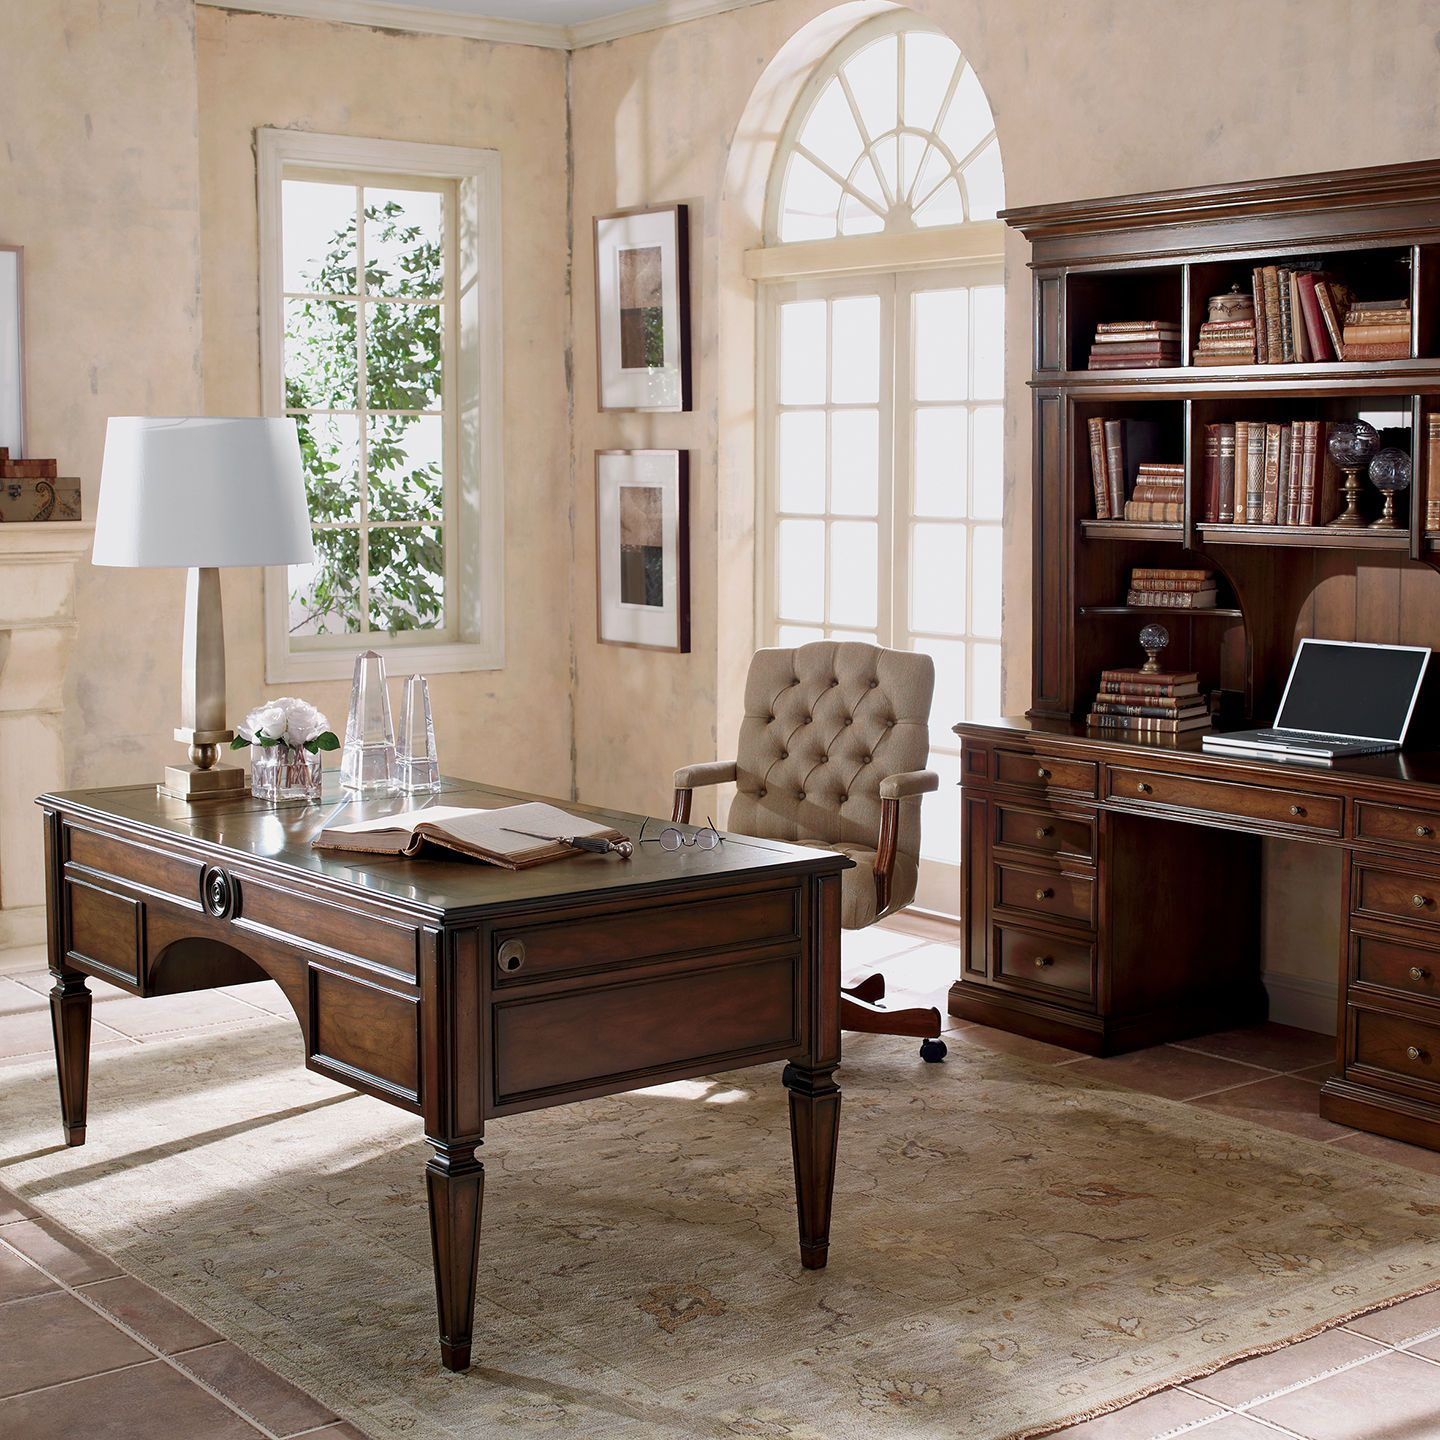 Buckley Leather Top Desk Home Office Decor Home Office Furniture Home